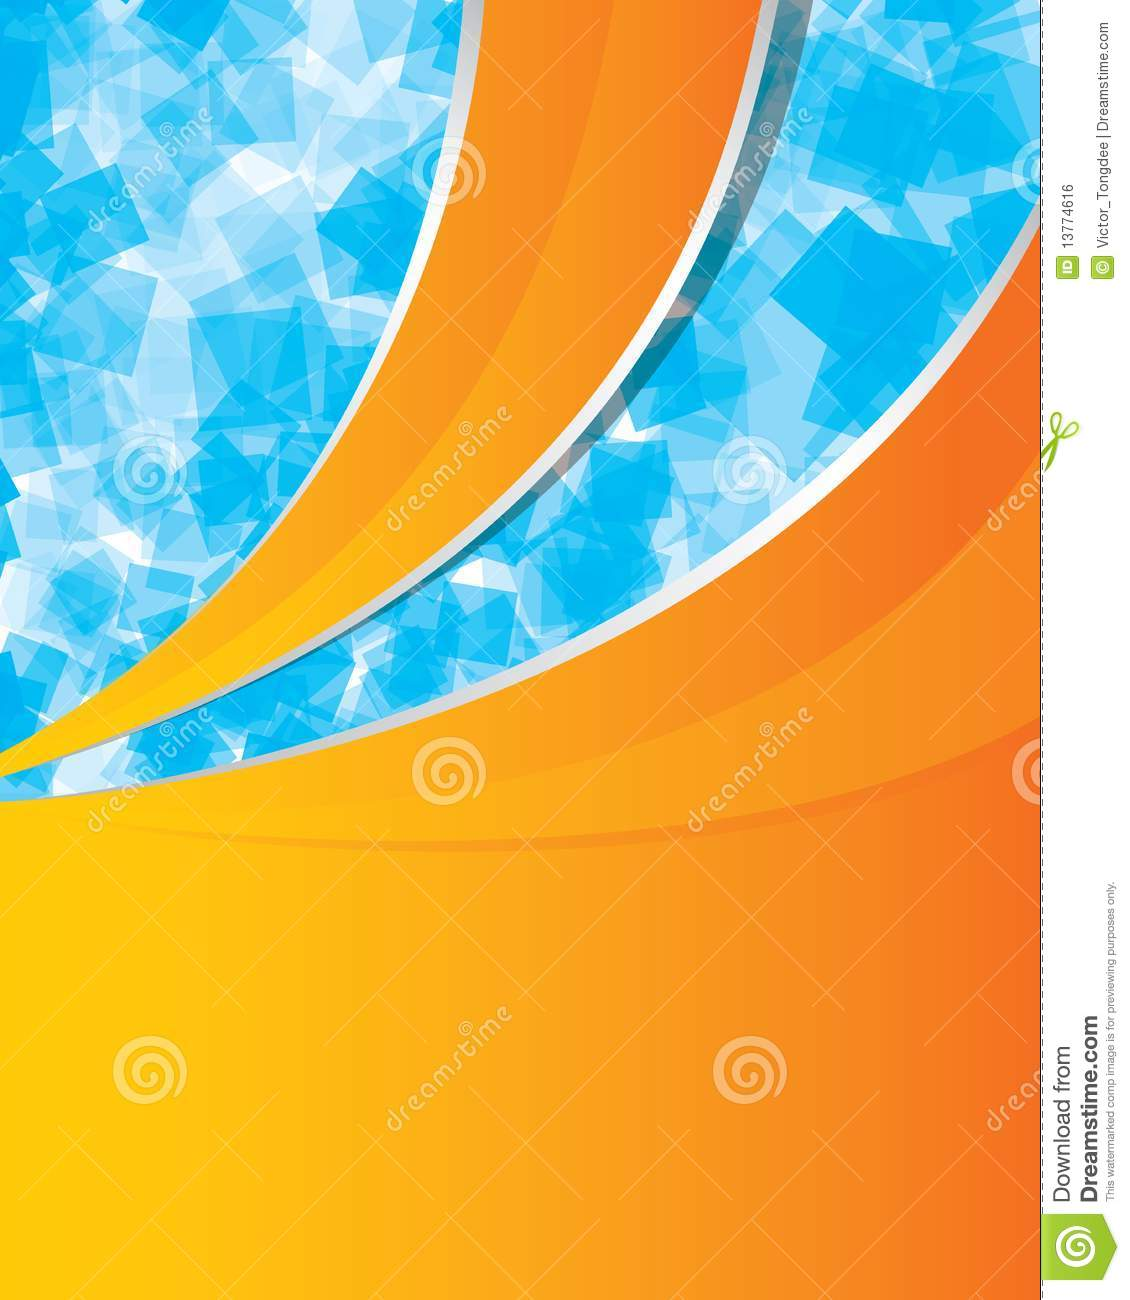 Orange And Blue Abstract Background